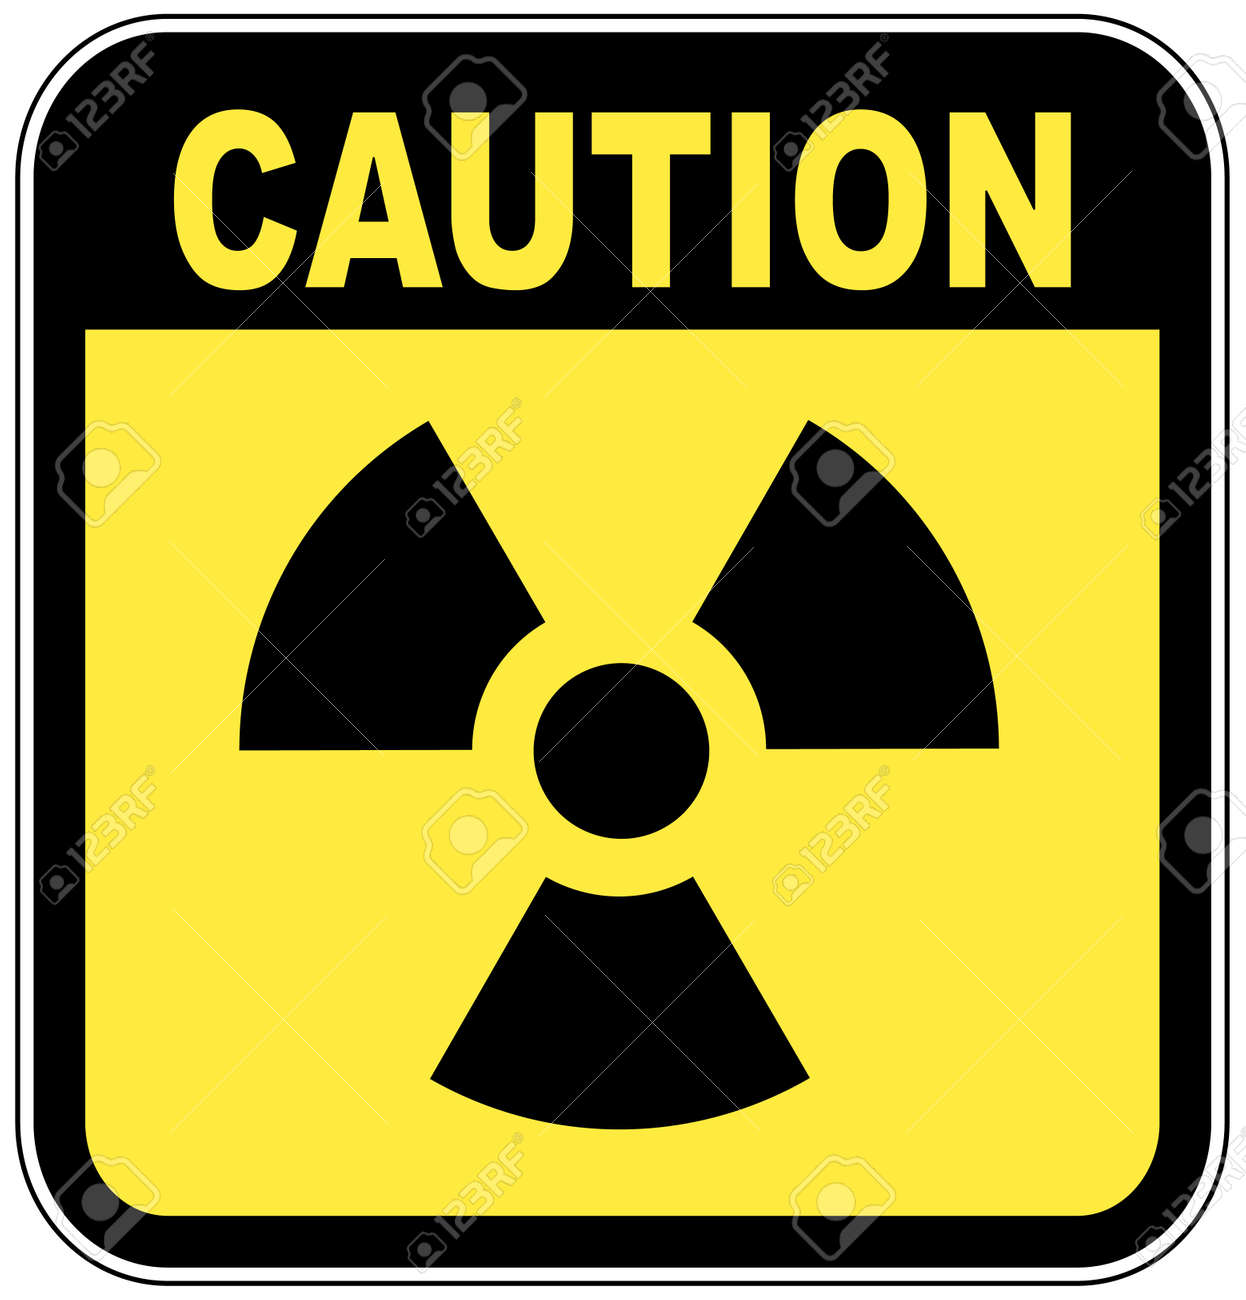 Radio active logo on yellow caution sign vector royalty free radio active logo on yellow caution sign vector stock vector 2854216 biocorpaavc Image collections